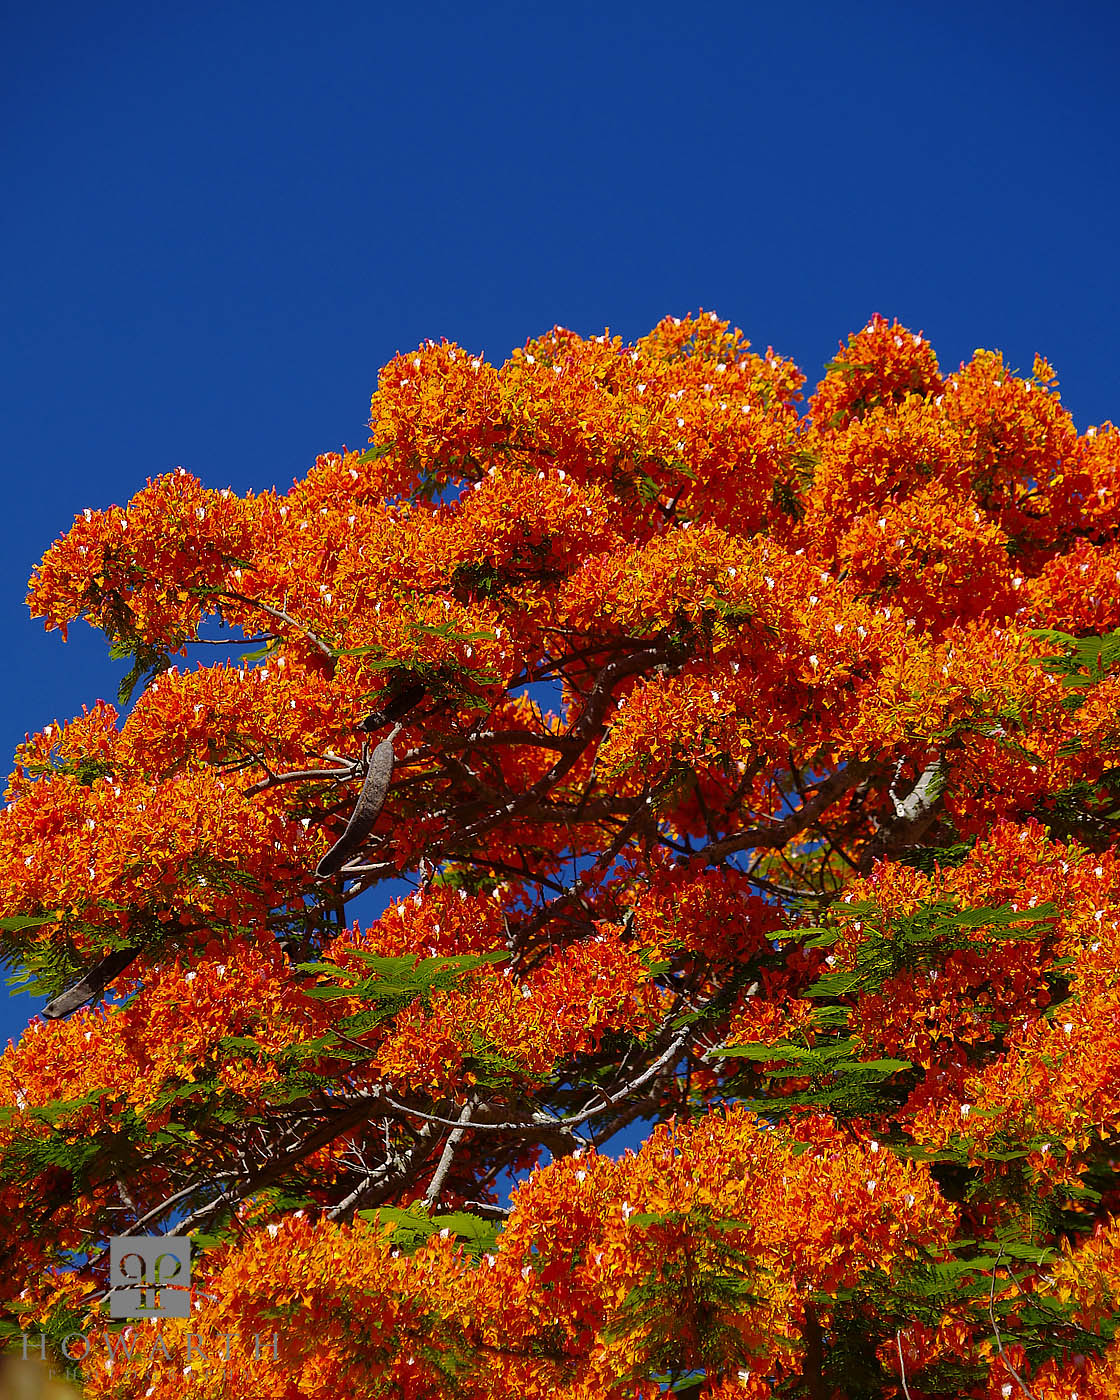 In the summer months these trees can bloom across the island, a beautiful site